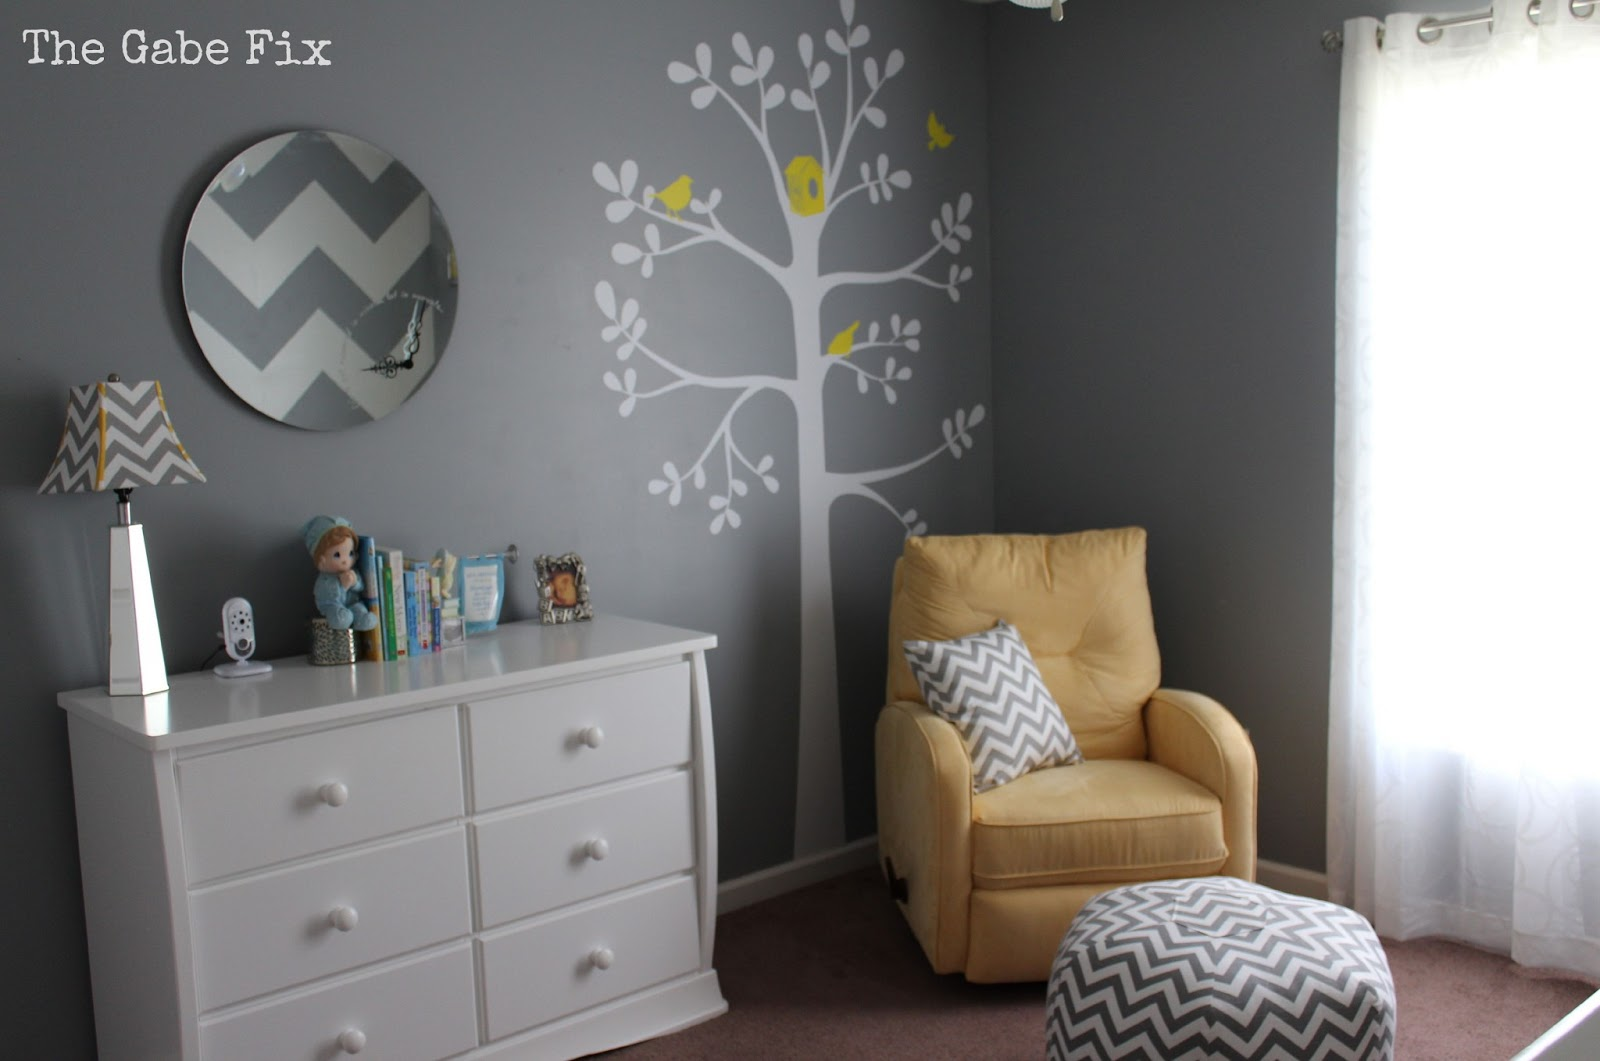 Baby Chads Nursery  The Gabe Fix by Gabrielle Flowers